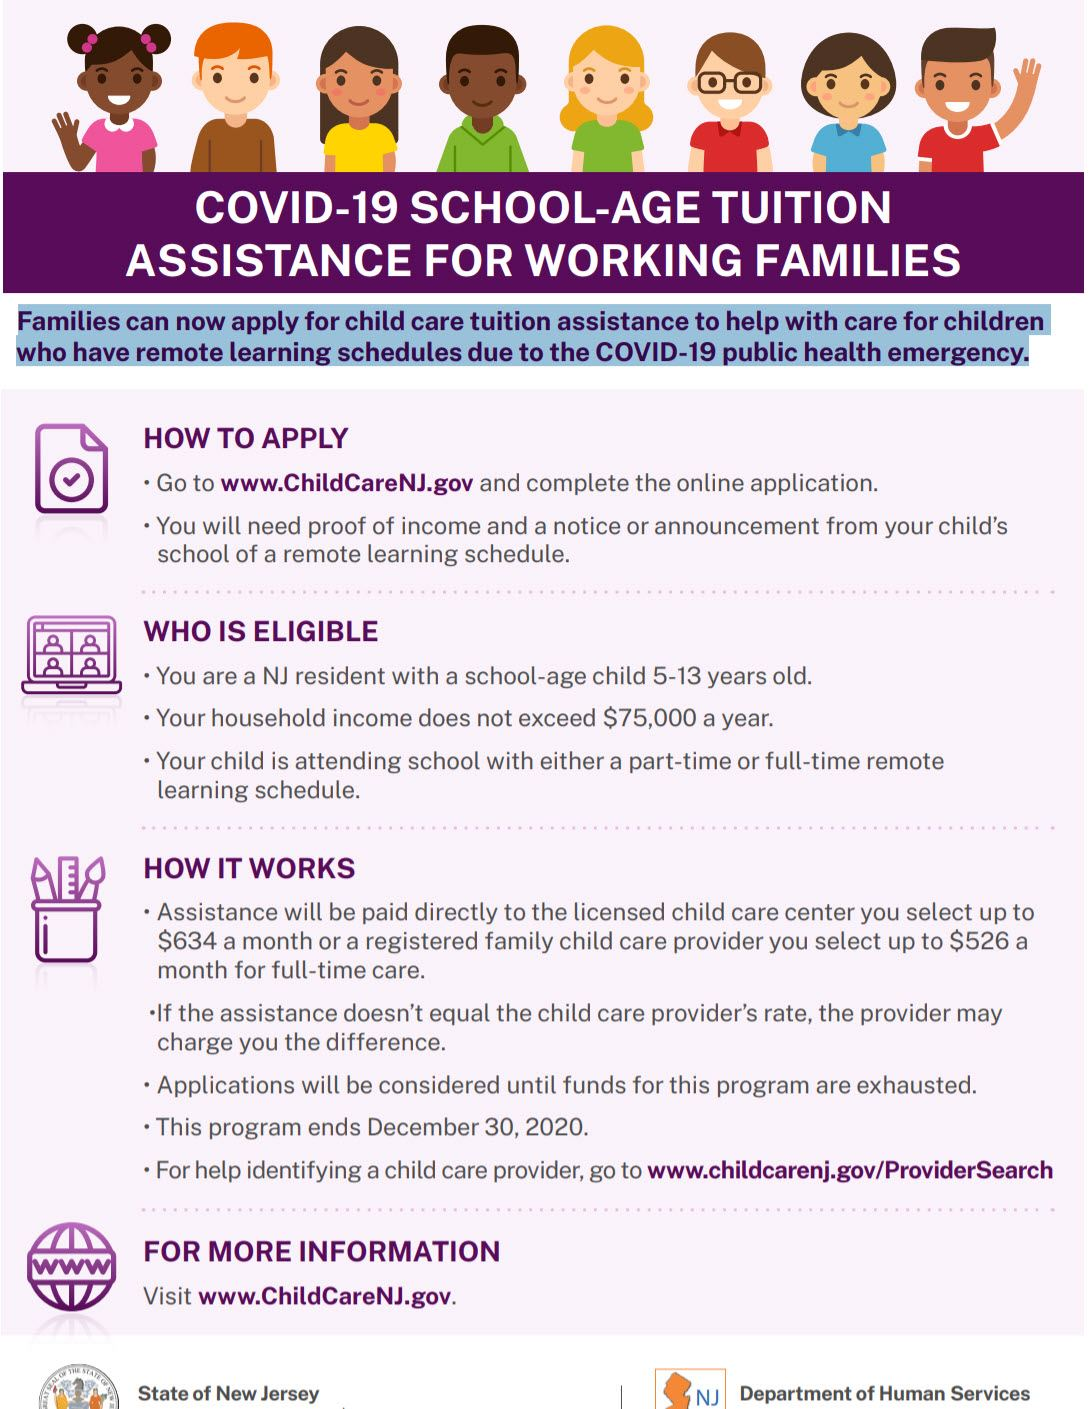 Families can now apply for child care tuition assistance to help with care for children who have remote learning schedules due to the COVID-19 public health emergency.